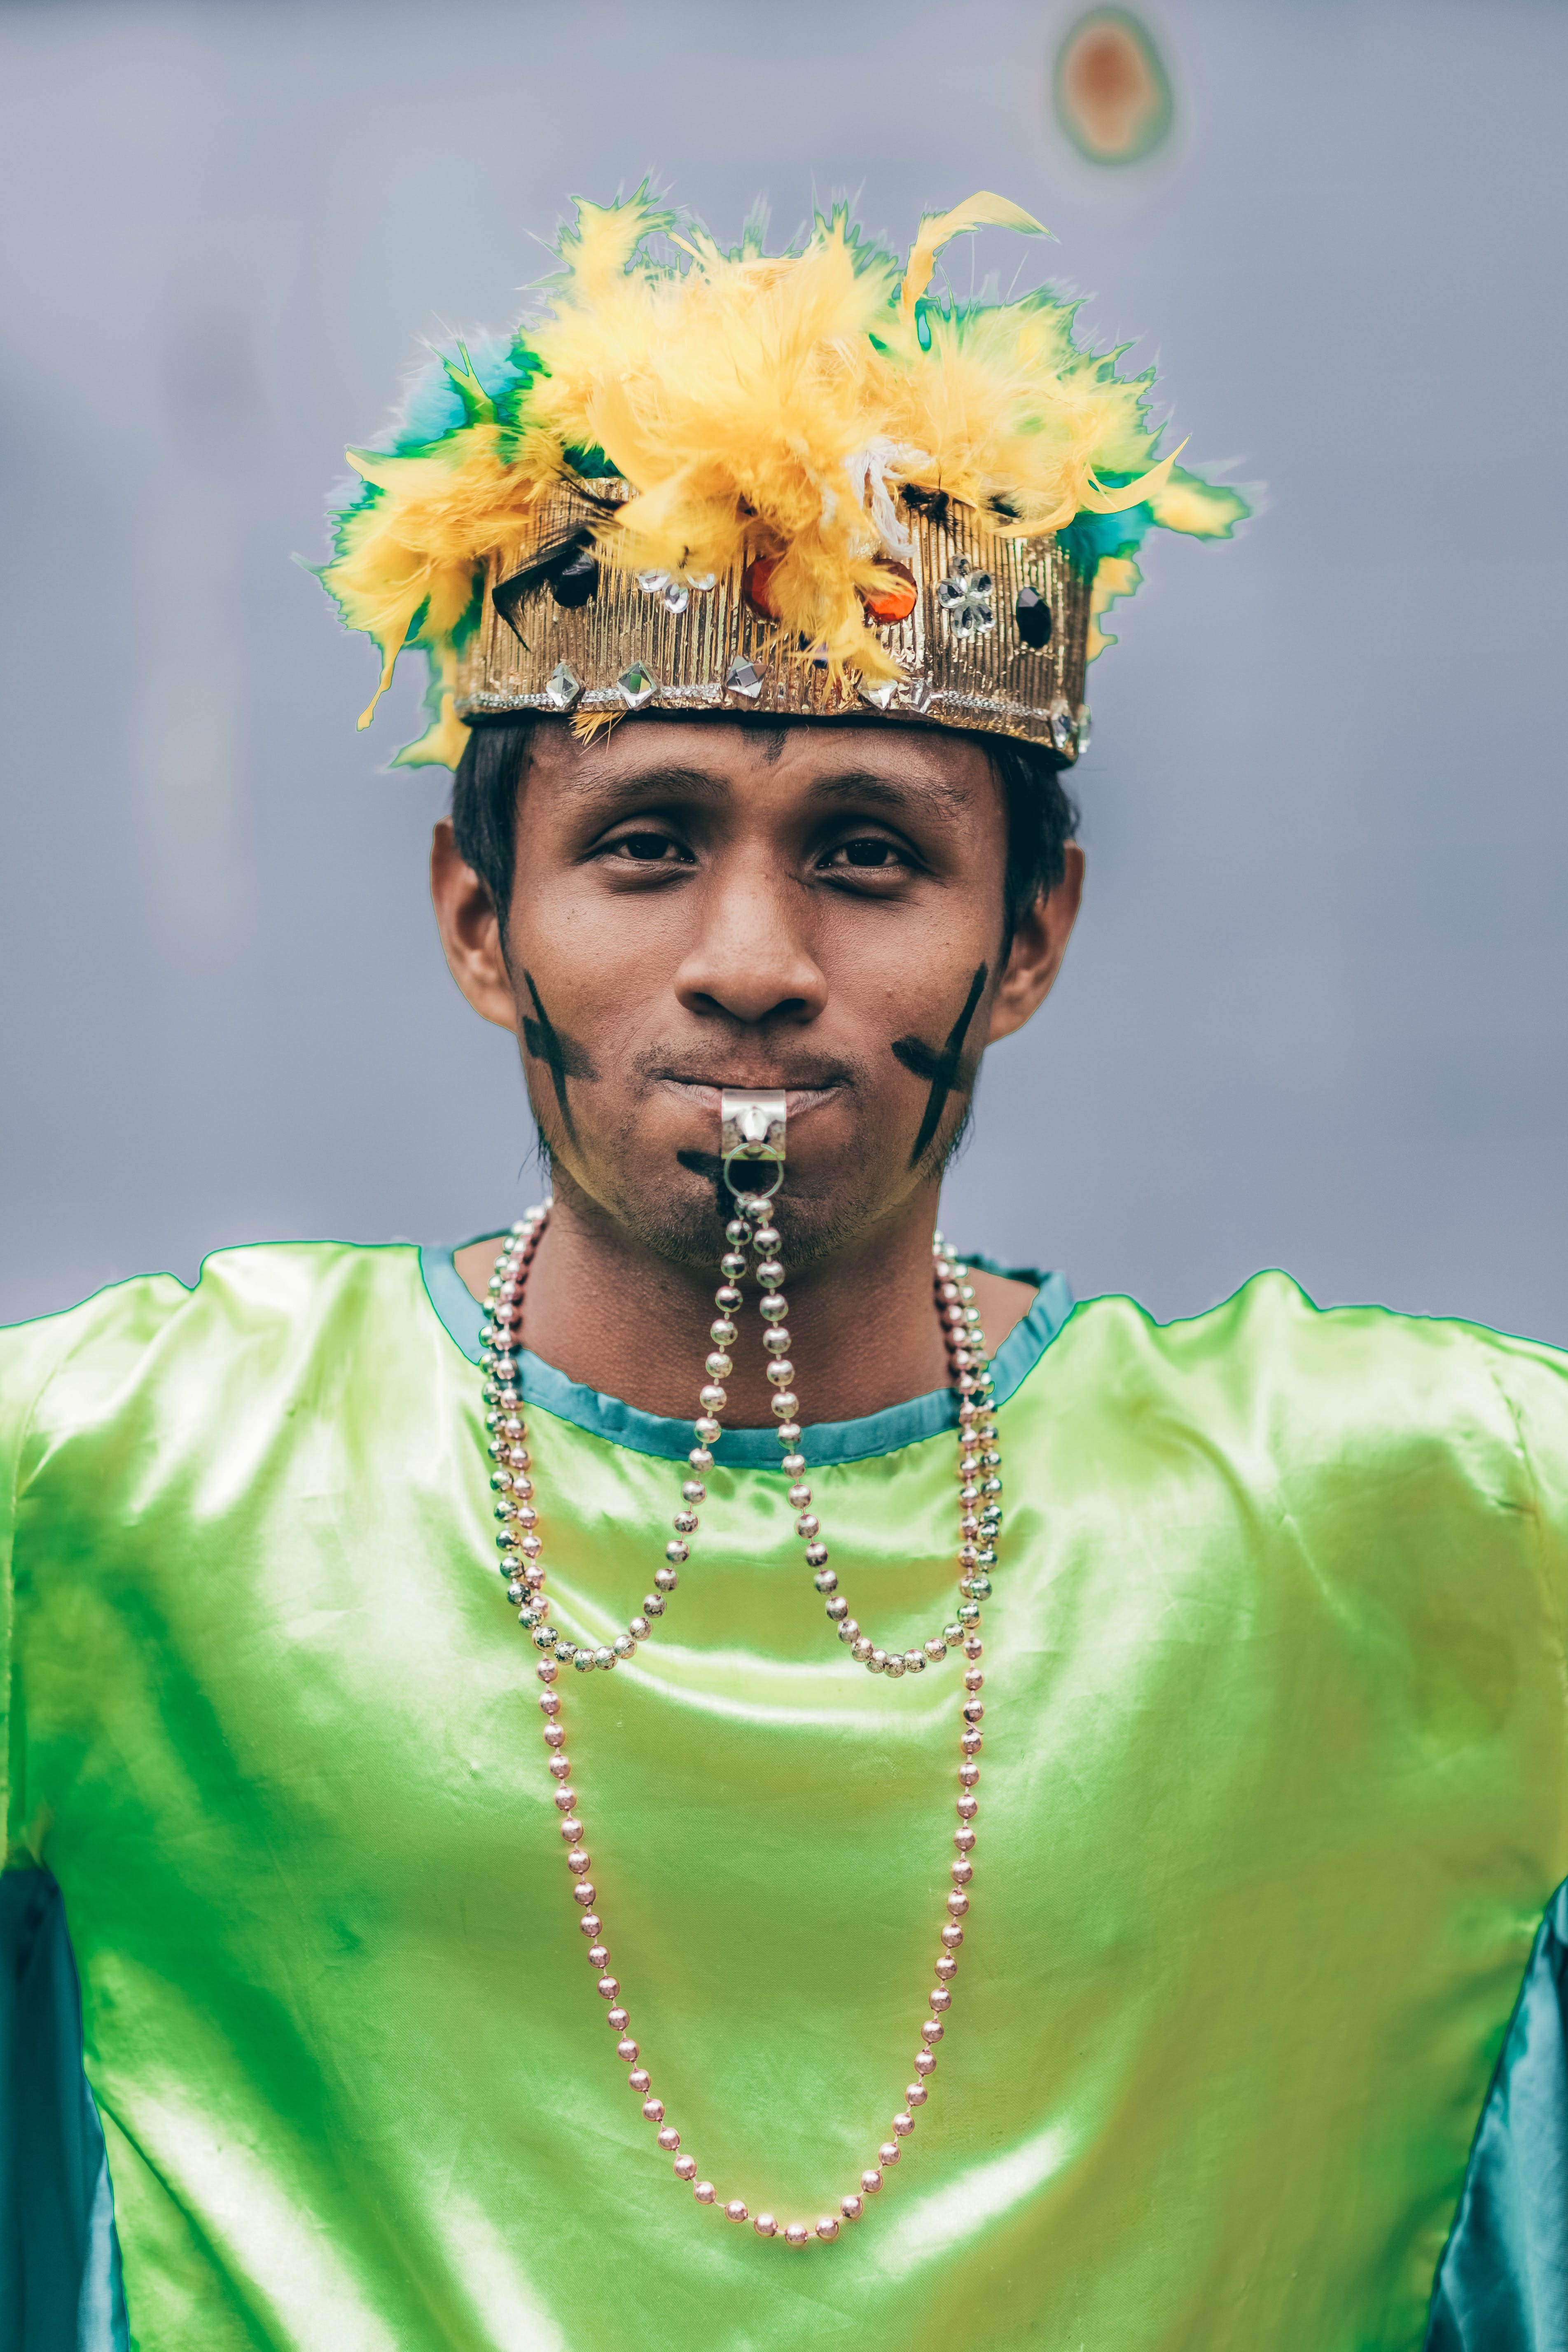 Man Wearing Headdress With Whistle In His Mouth